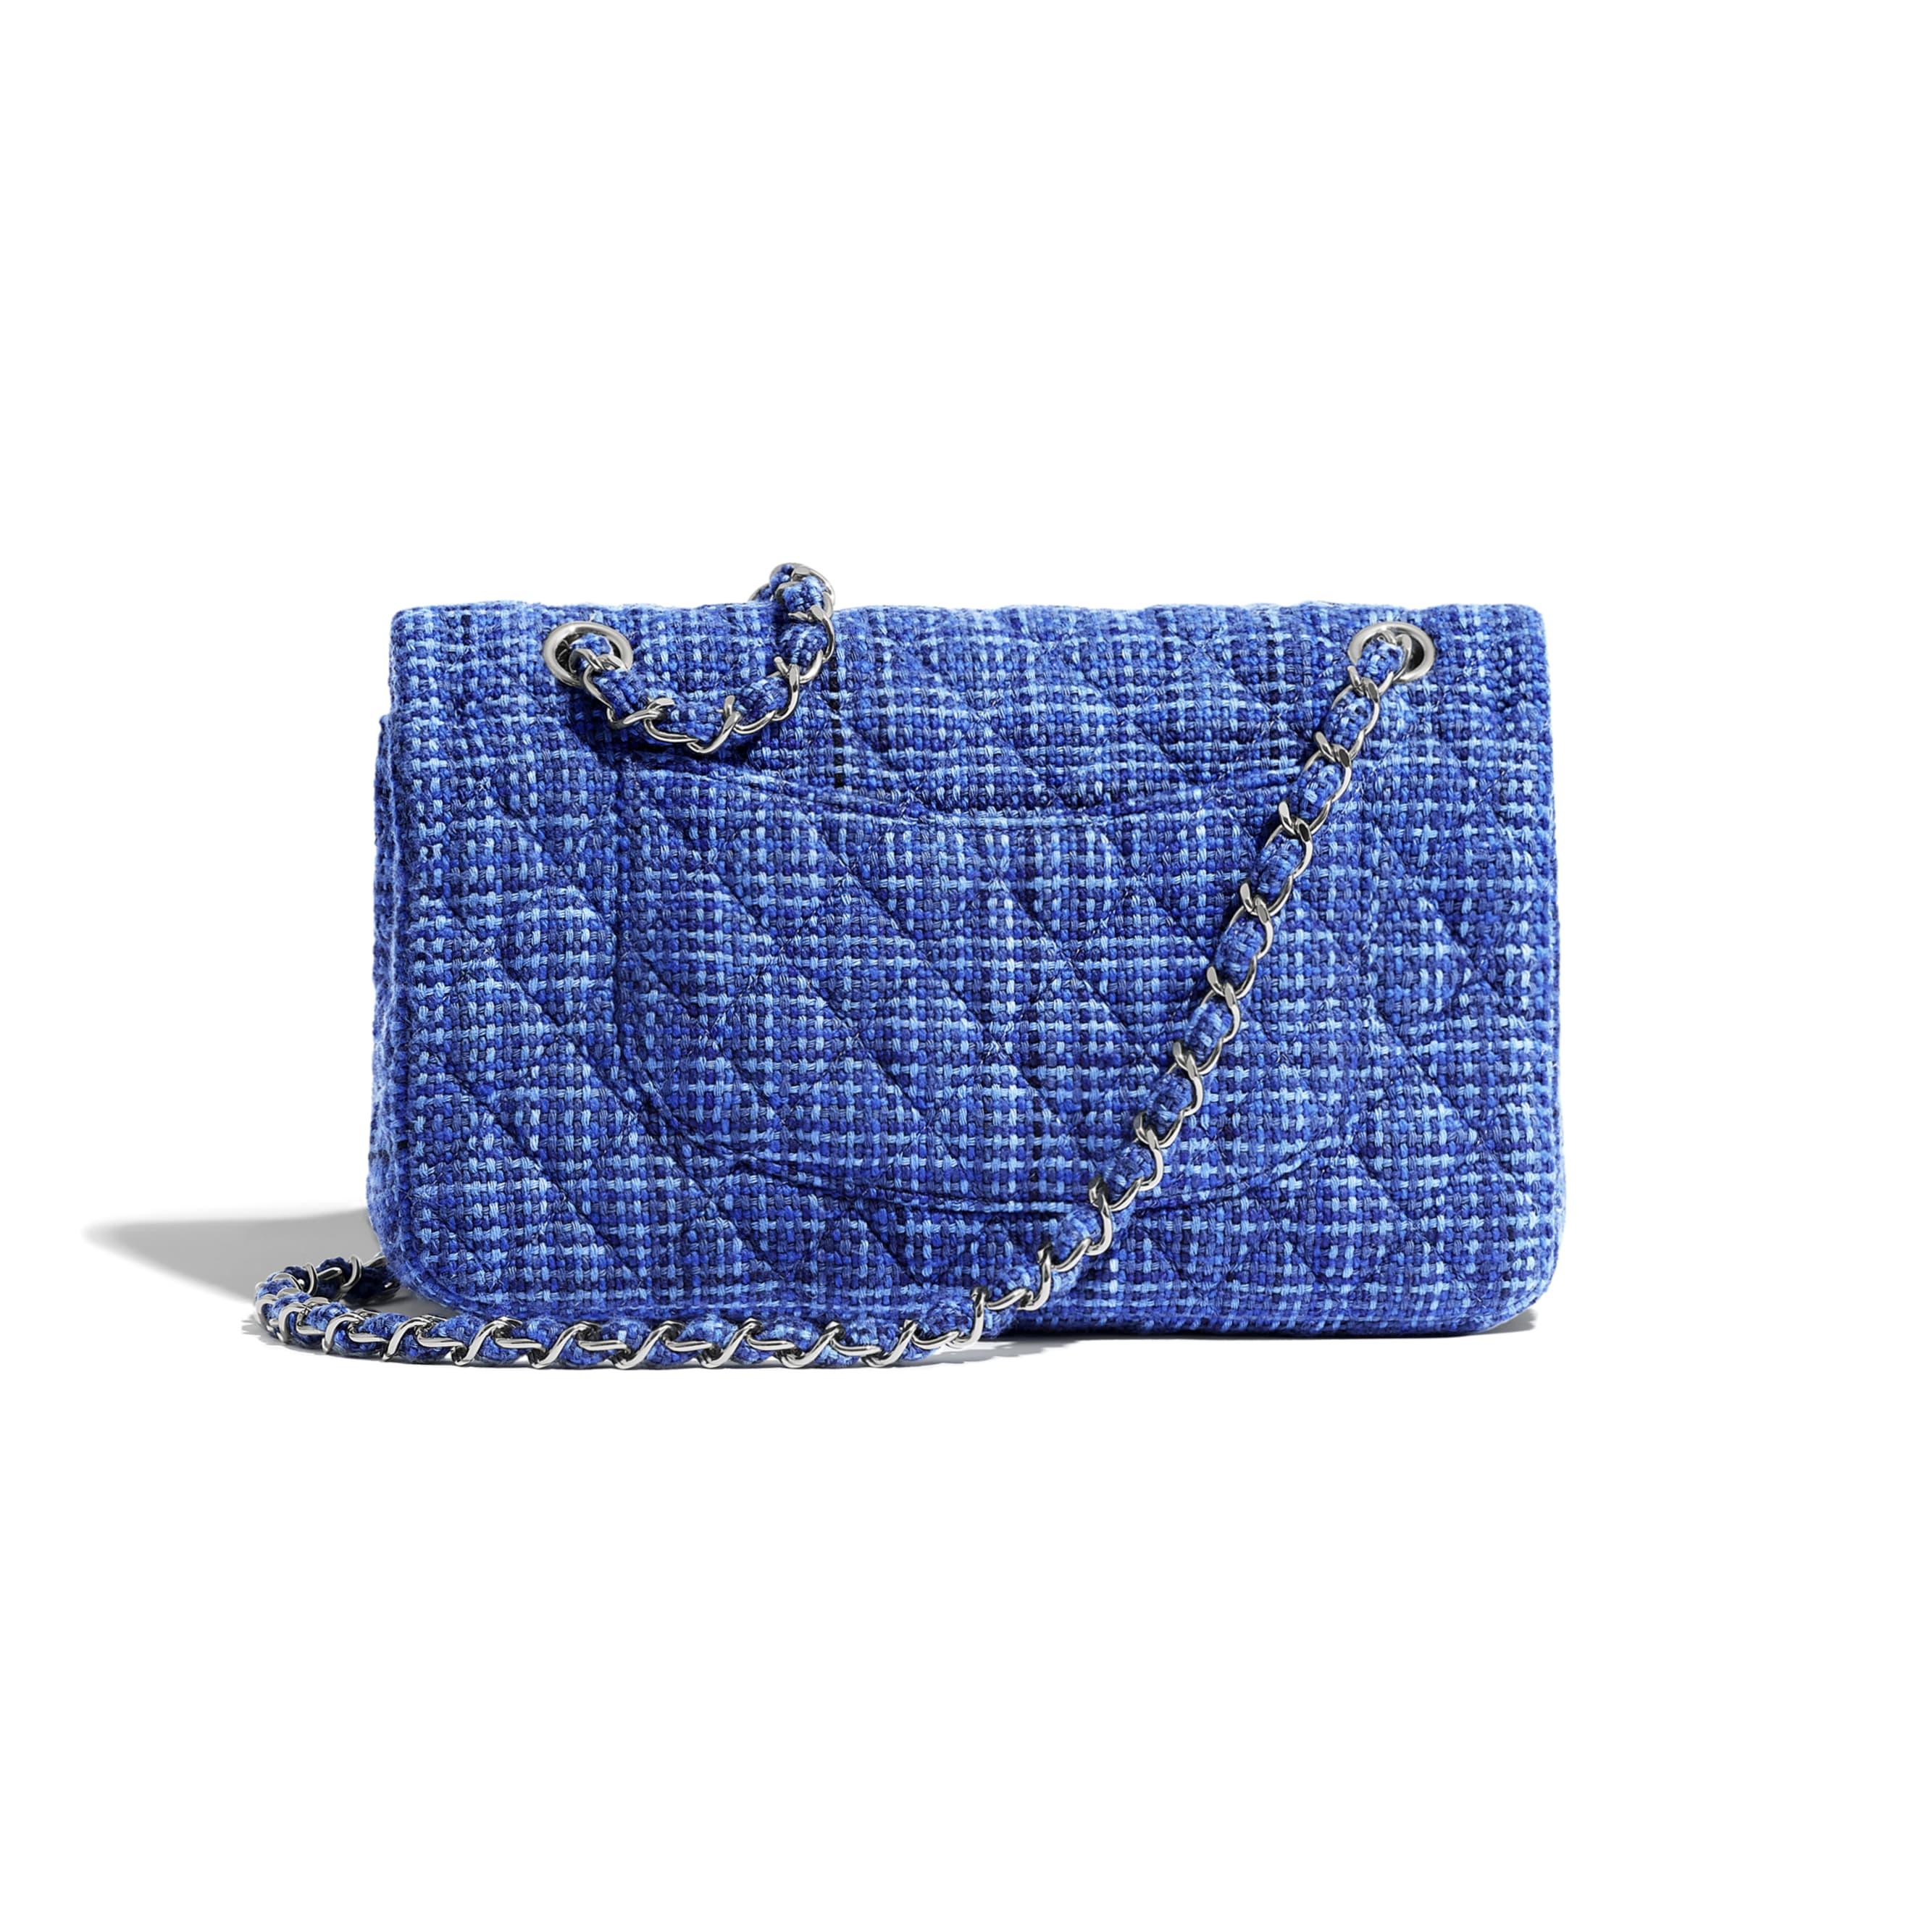 Classic Handbag - Blue - Tweed & Silver-Tone Metal - Alternative view - see standard sized version